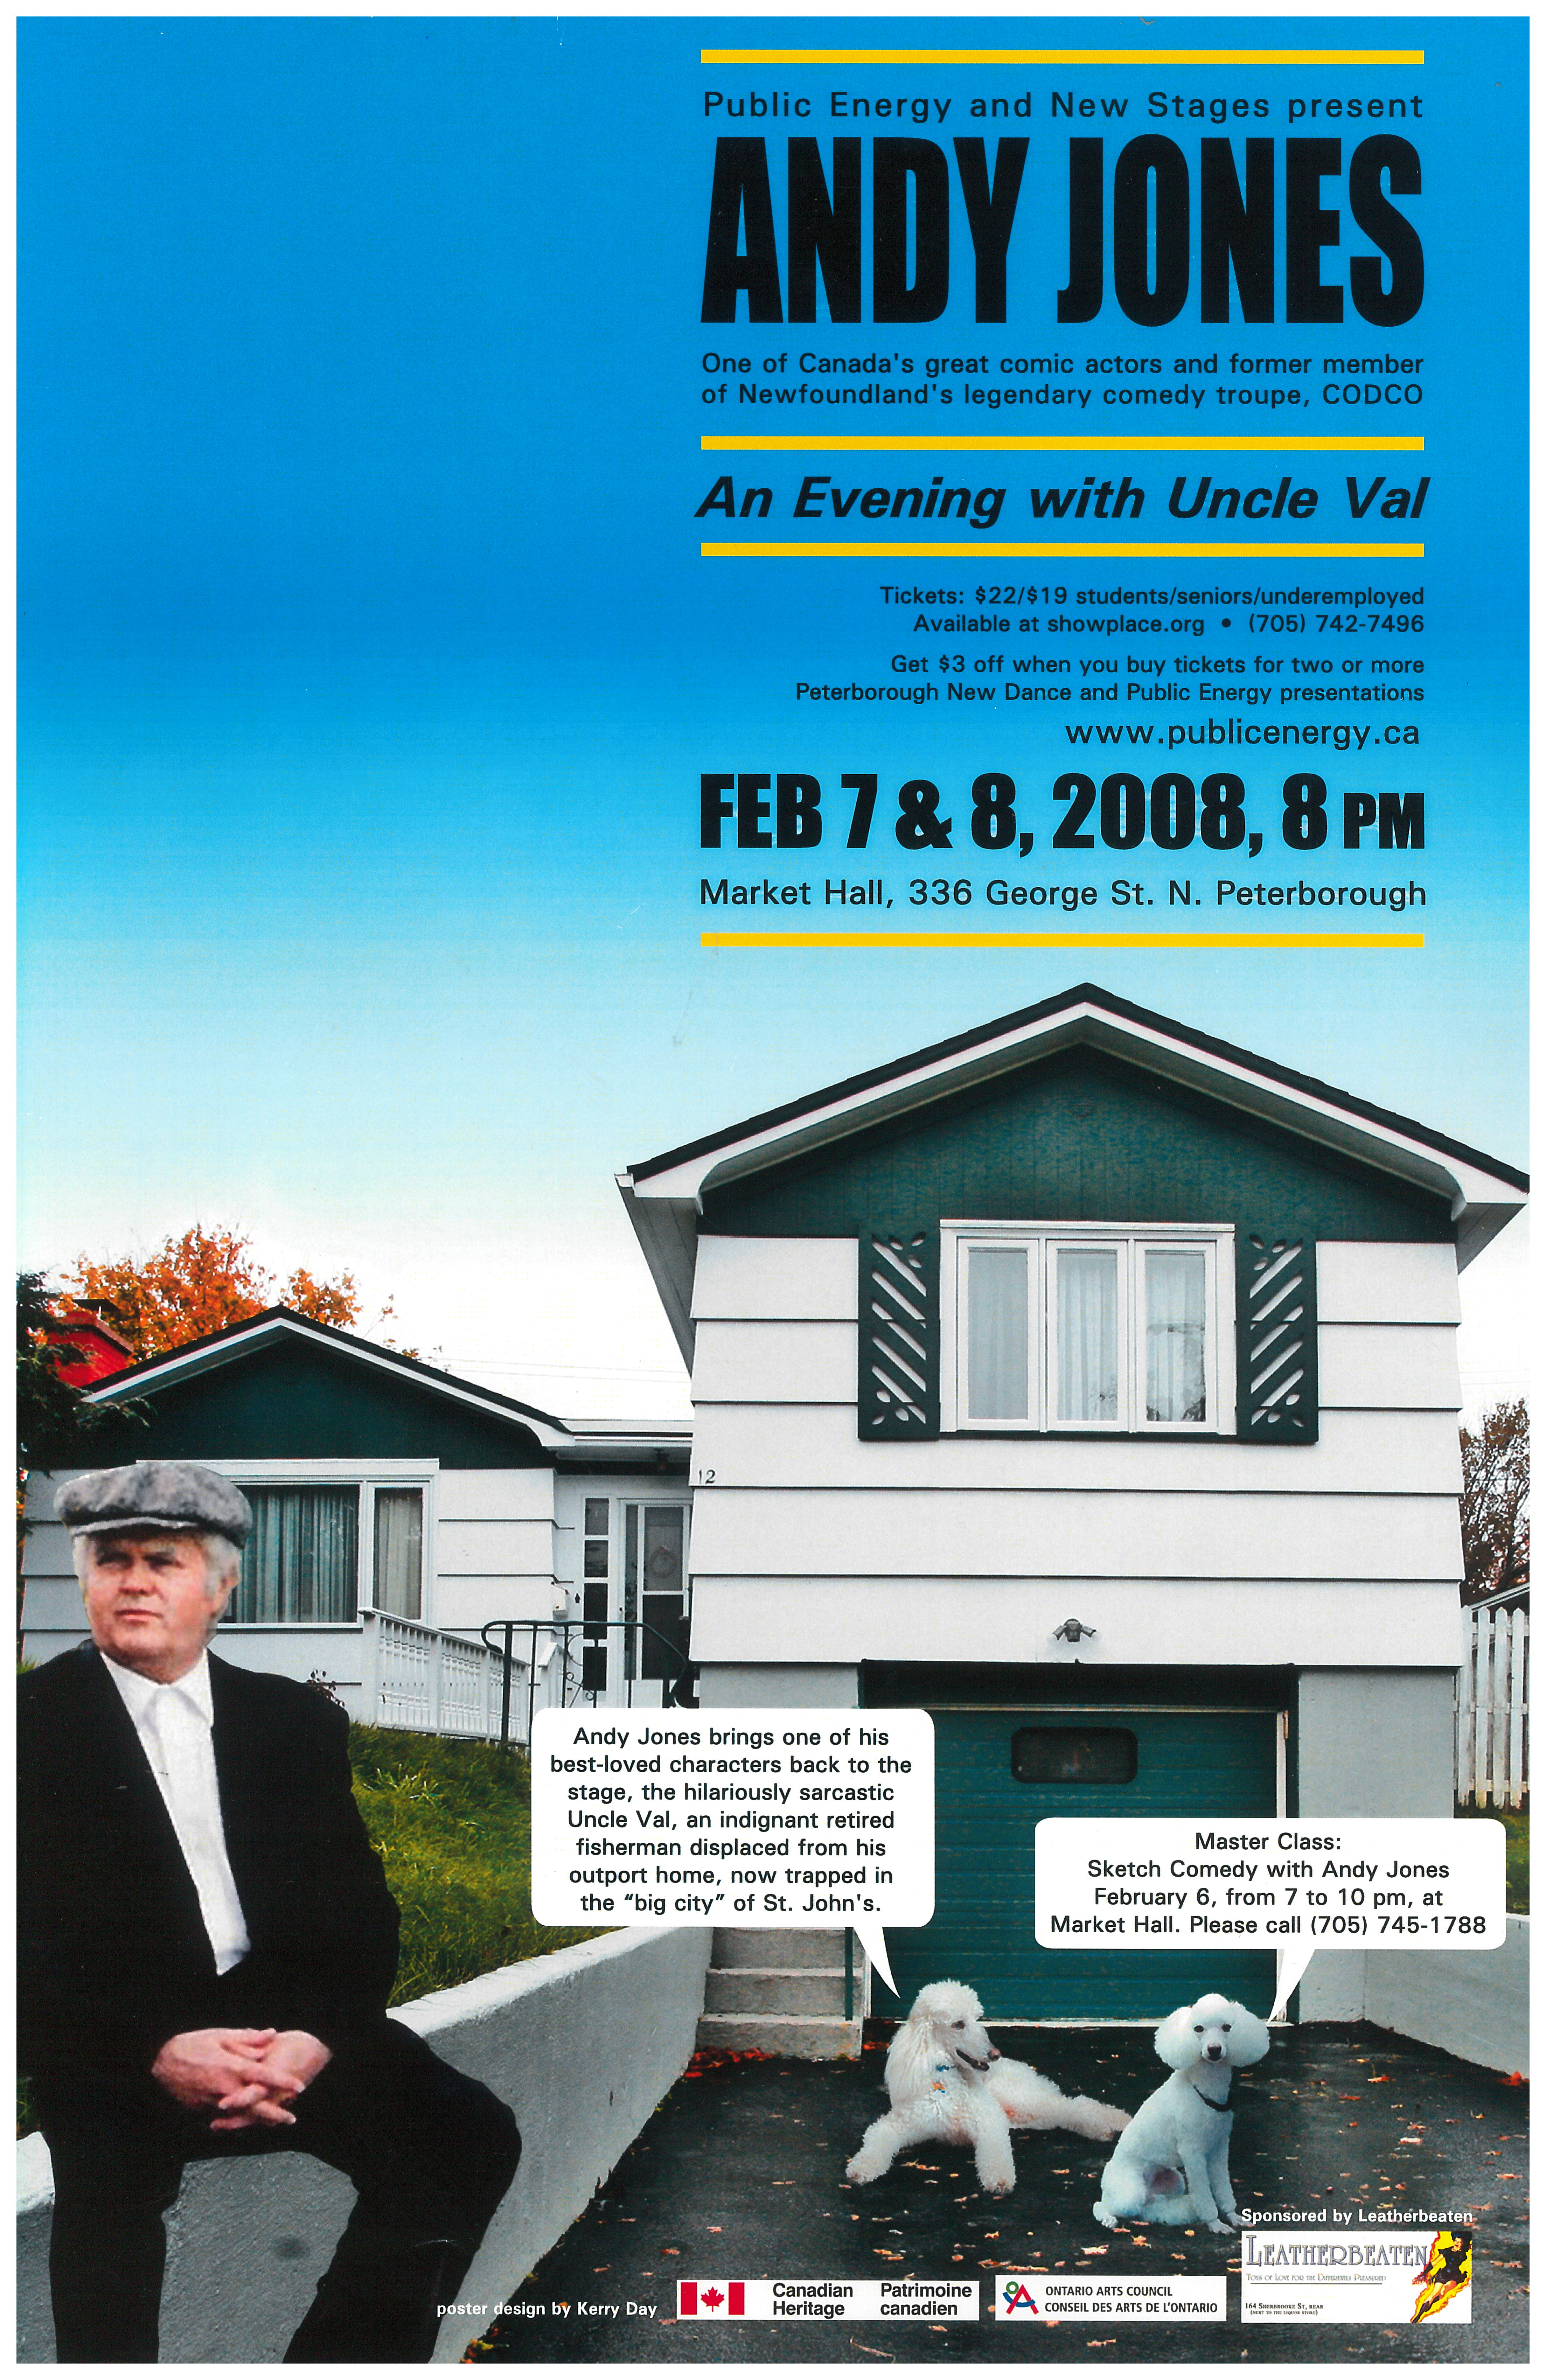 Poster for Andy Jones in A Evening With Uncles Vai